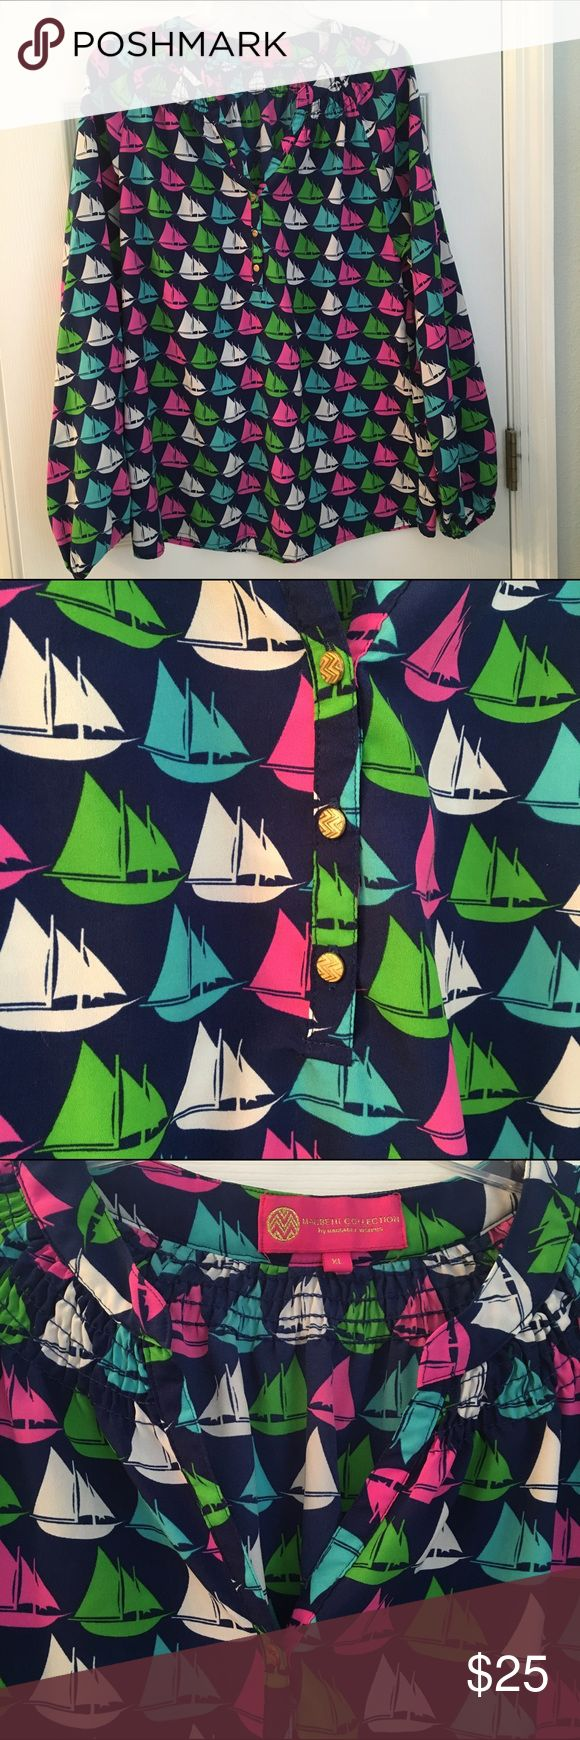 """""""Elsa style"""" Macbeth Collection nautical blouse Nautical blouse – similar style to the Elsa top from Lilly Pulitzer. In excellent condition super vibrant colors. Not silk. Macbeth Collection Tops Blouses"""